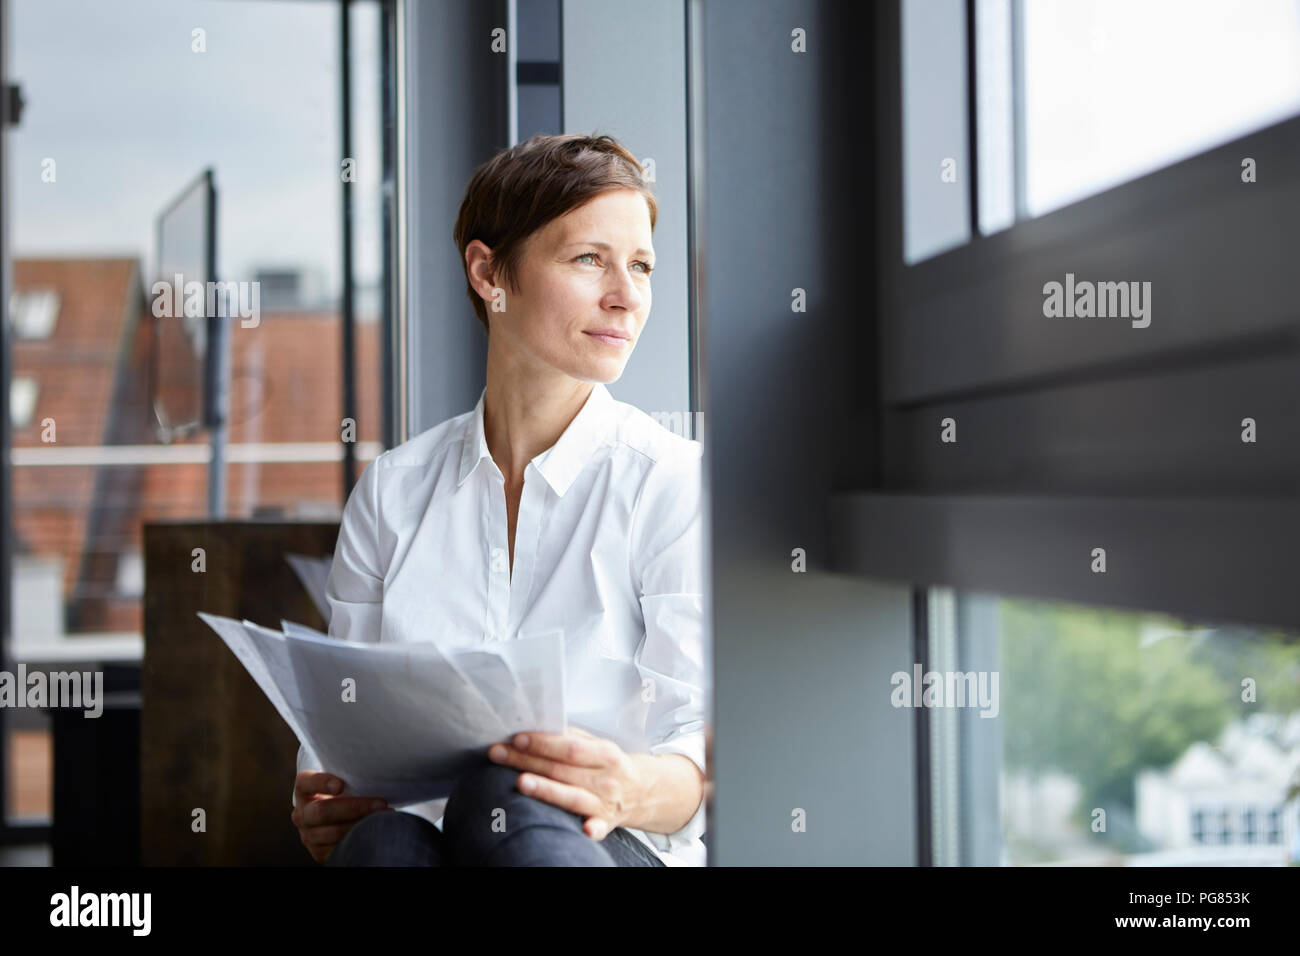 Businesswoman sitting in office with documents looking out of window - Stock Image